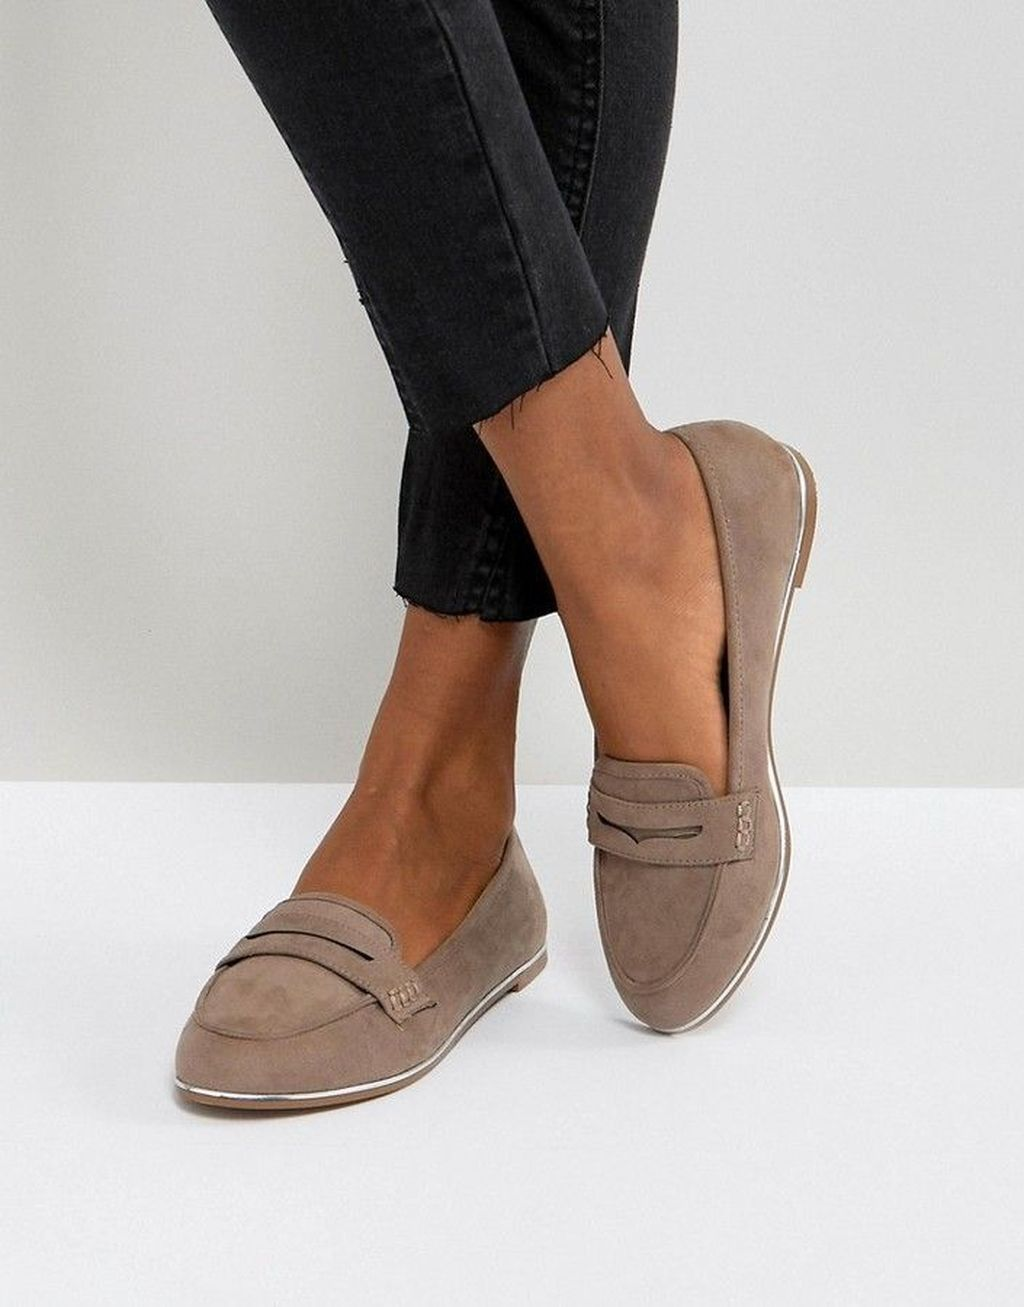 45++ Casual shoes for women ideas ideas